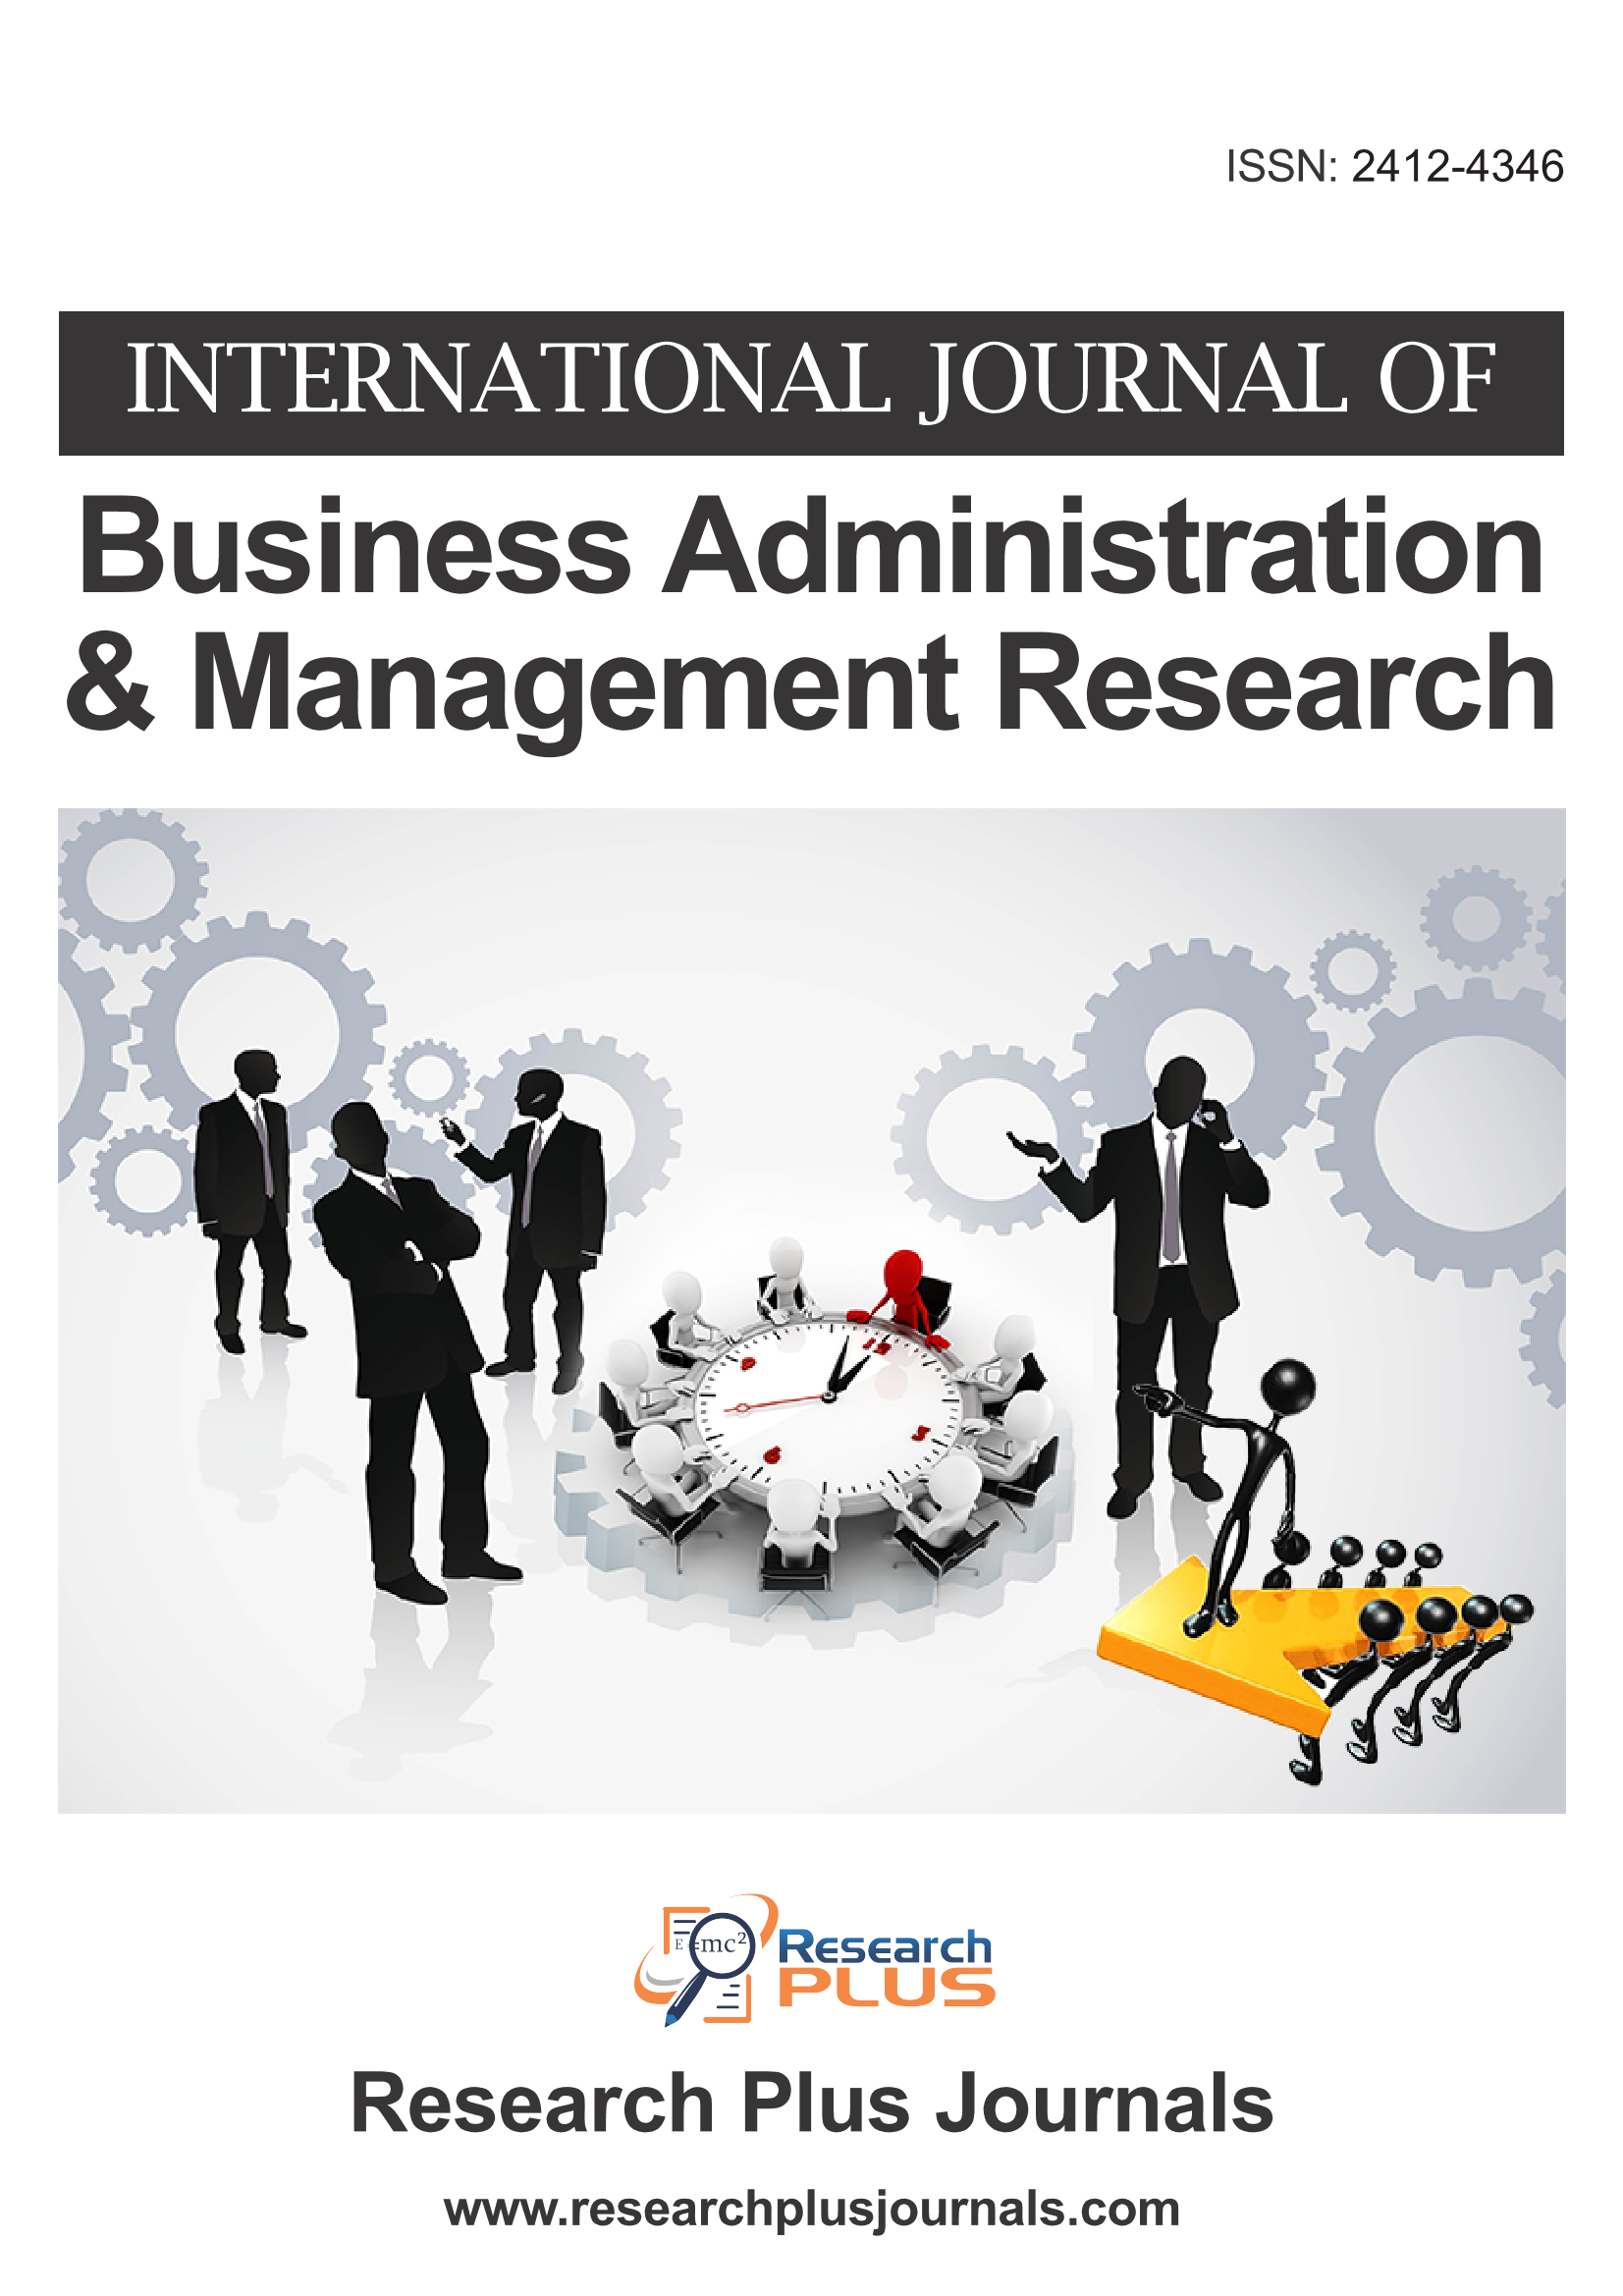 global journal of management and business Saturday, may 11, 2013 irmbr is indexed in international scientific indexing (isi), global impact factor (gif), ulrichsweb, j-gate, index copernicus, proquest and in many other international databases.